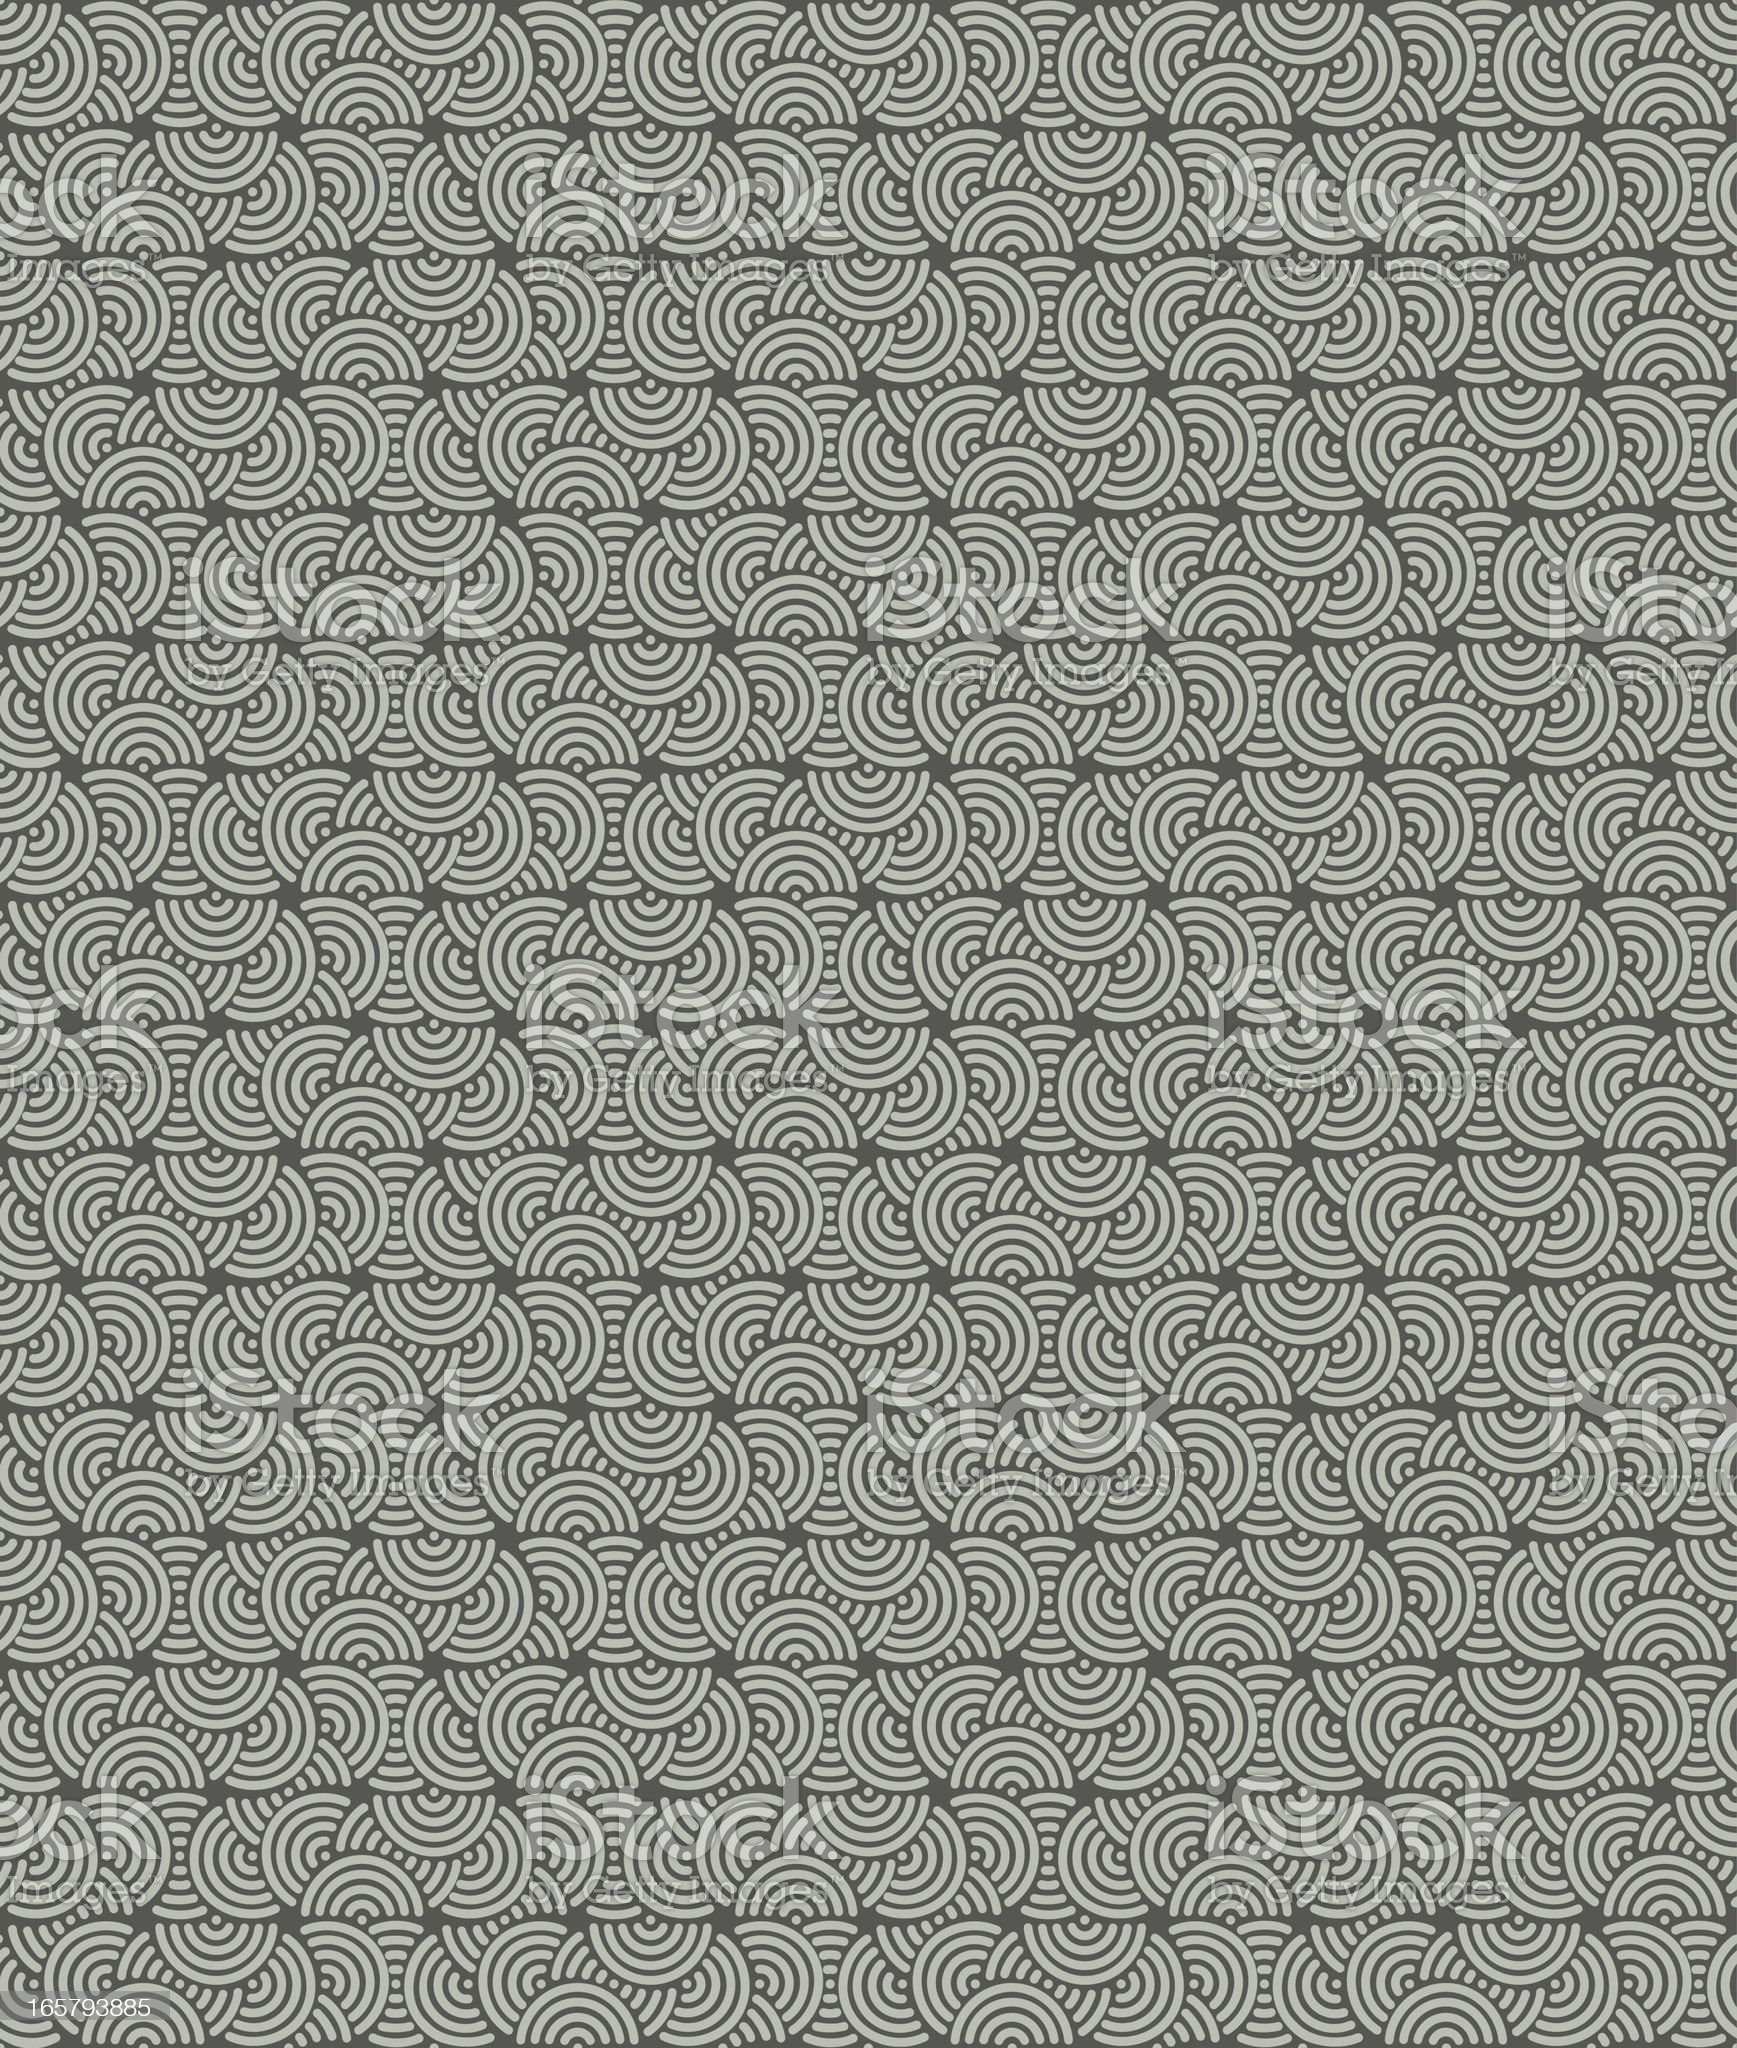 Background of concentric circles in a seamless pattern royalty-free stock vector art